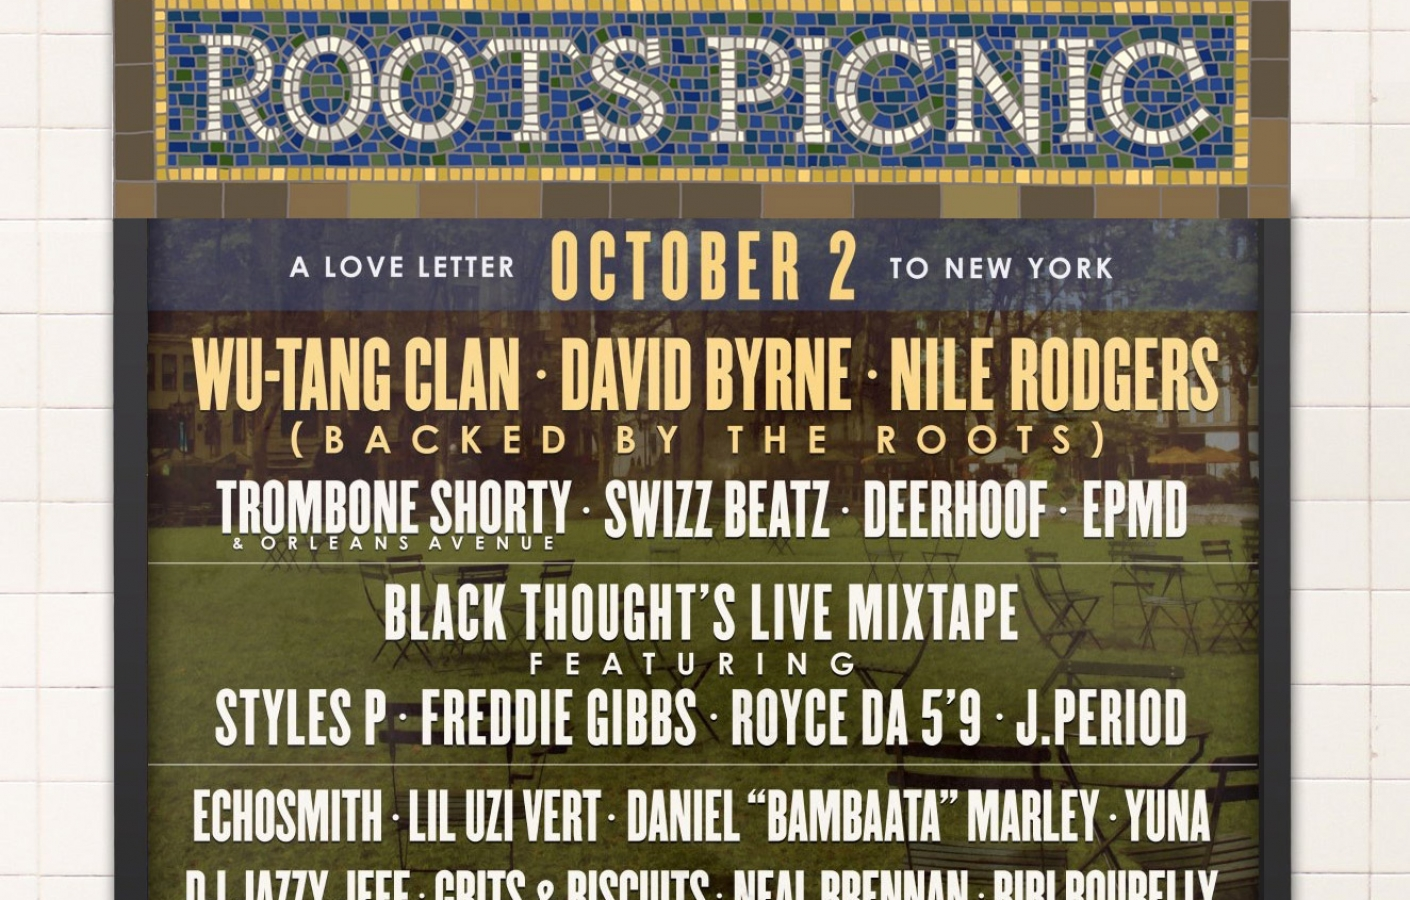 ROOTS PICNIC IS COMING TO NYC!!